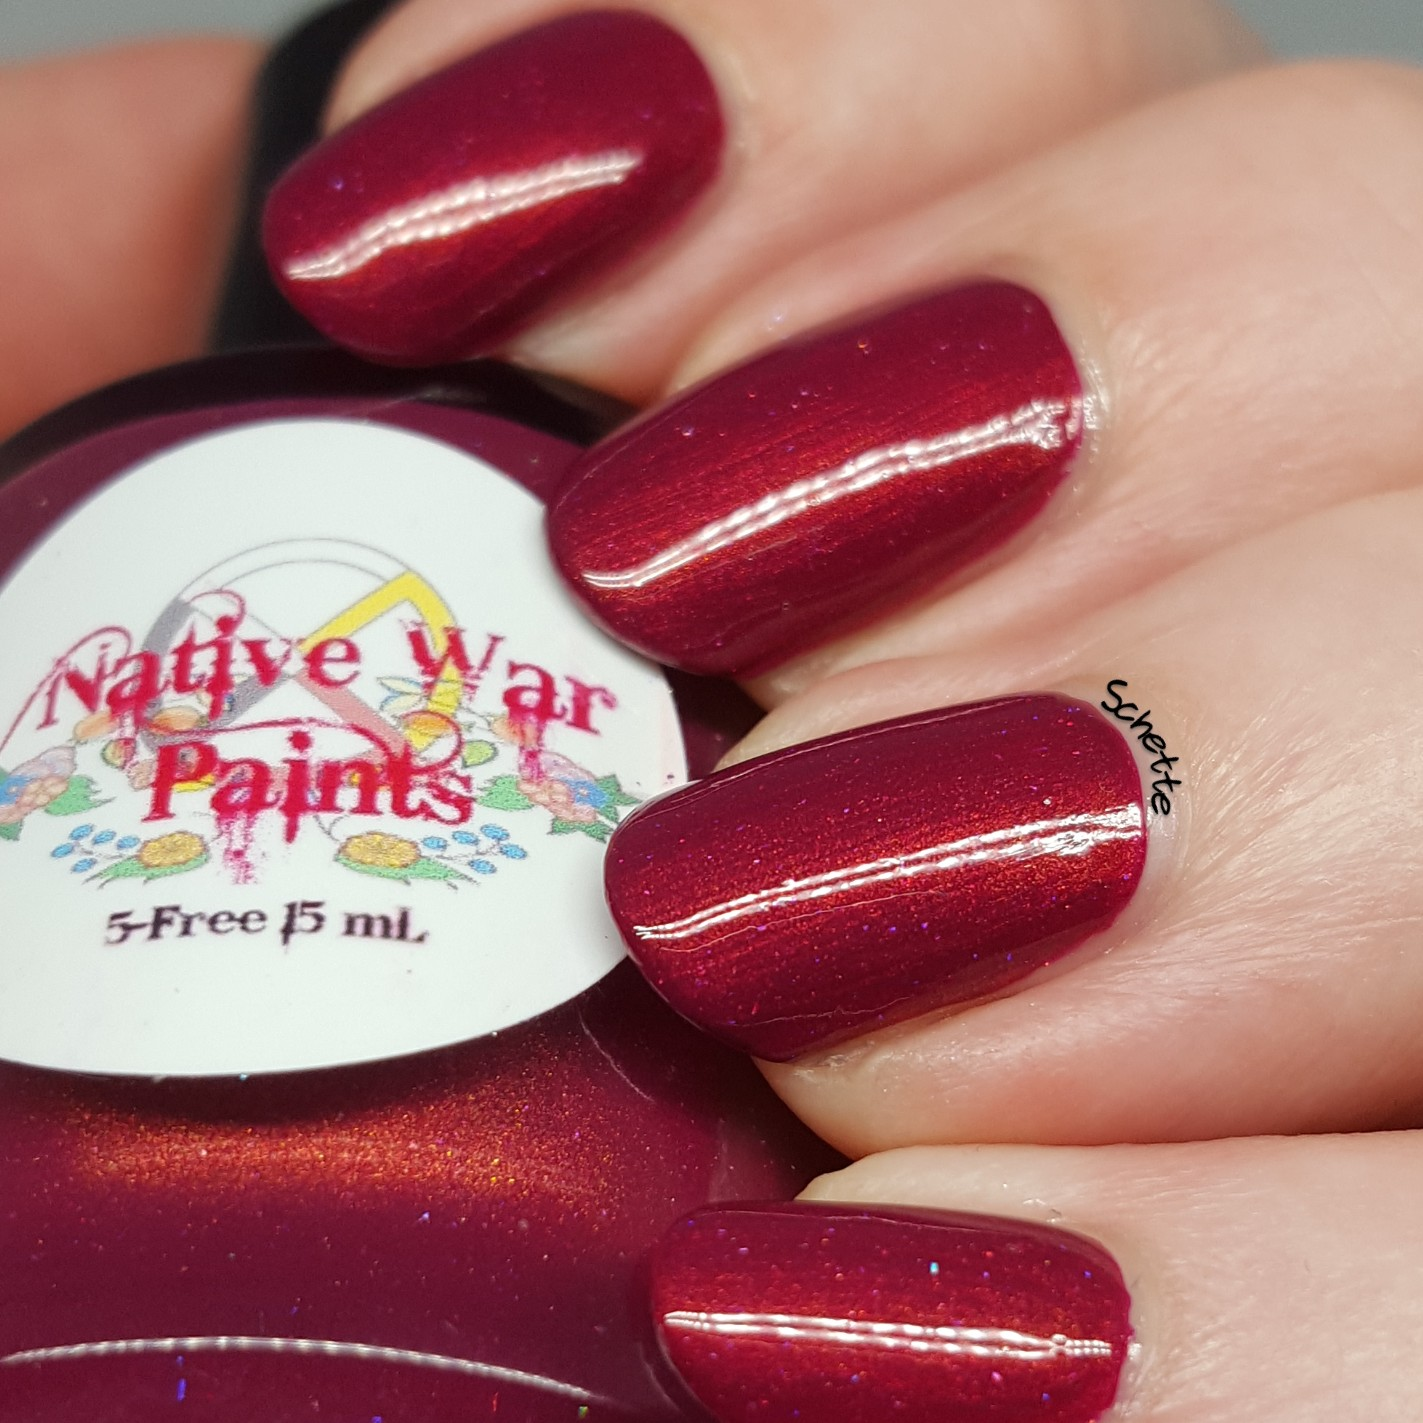 Native War Paints - Girl about town